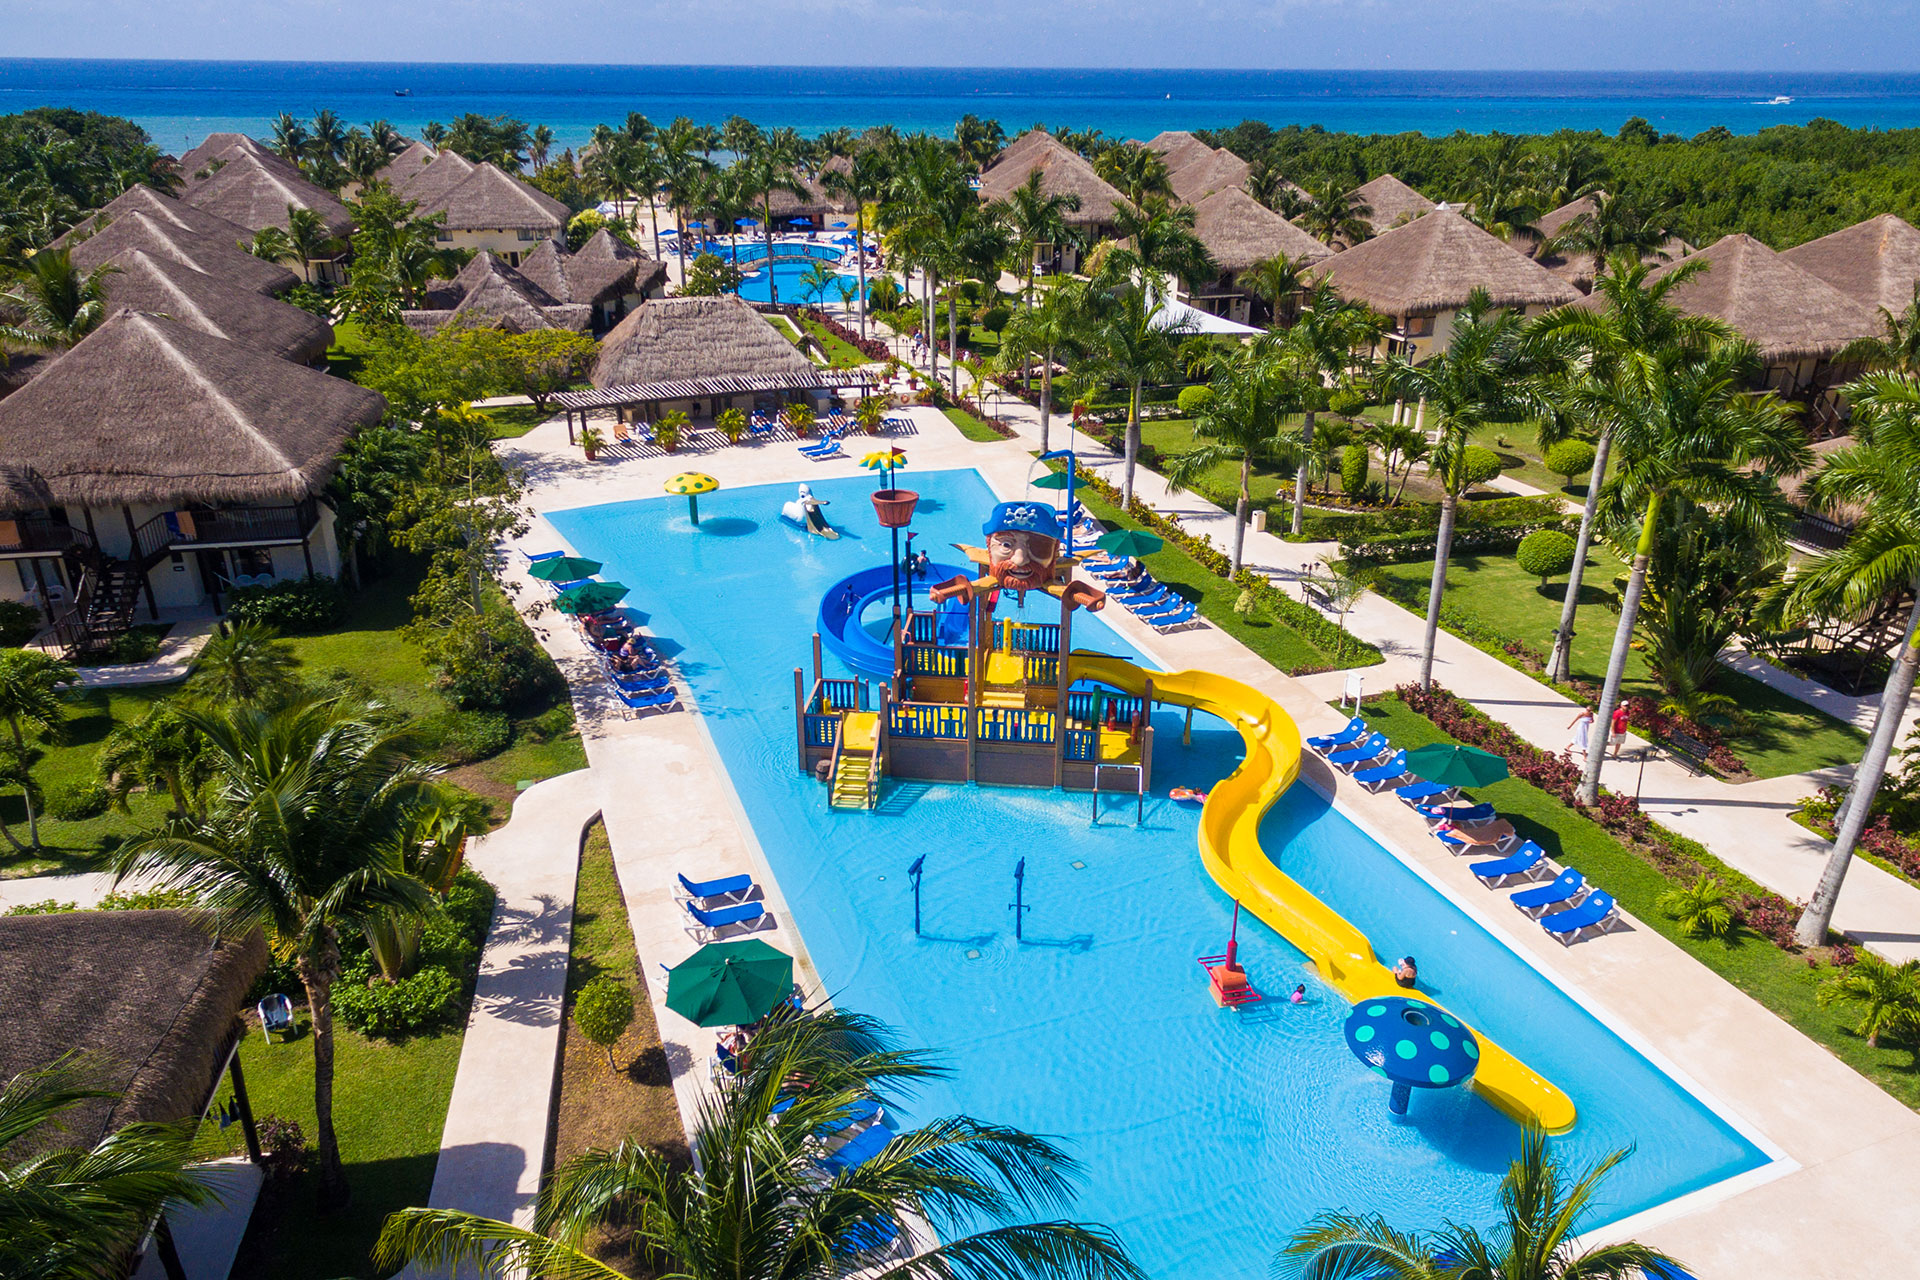 Water Park at Allegro Cozumel in Mexico